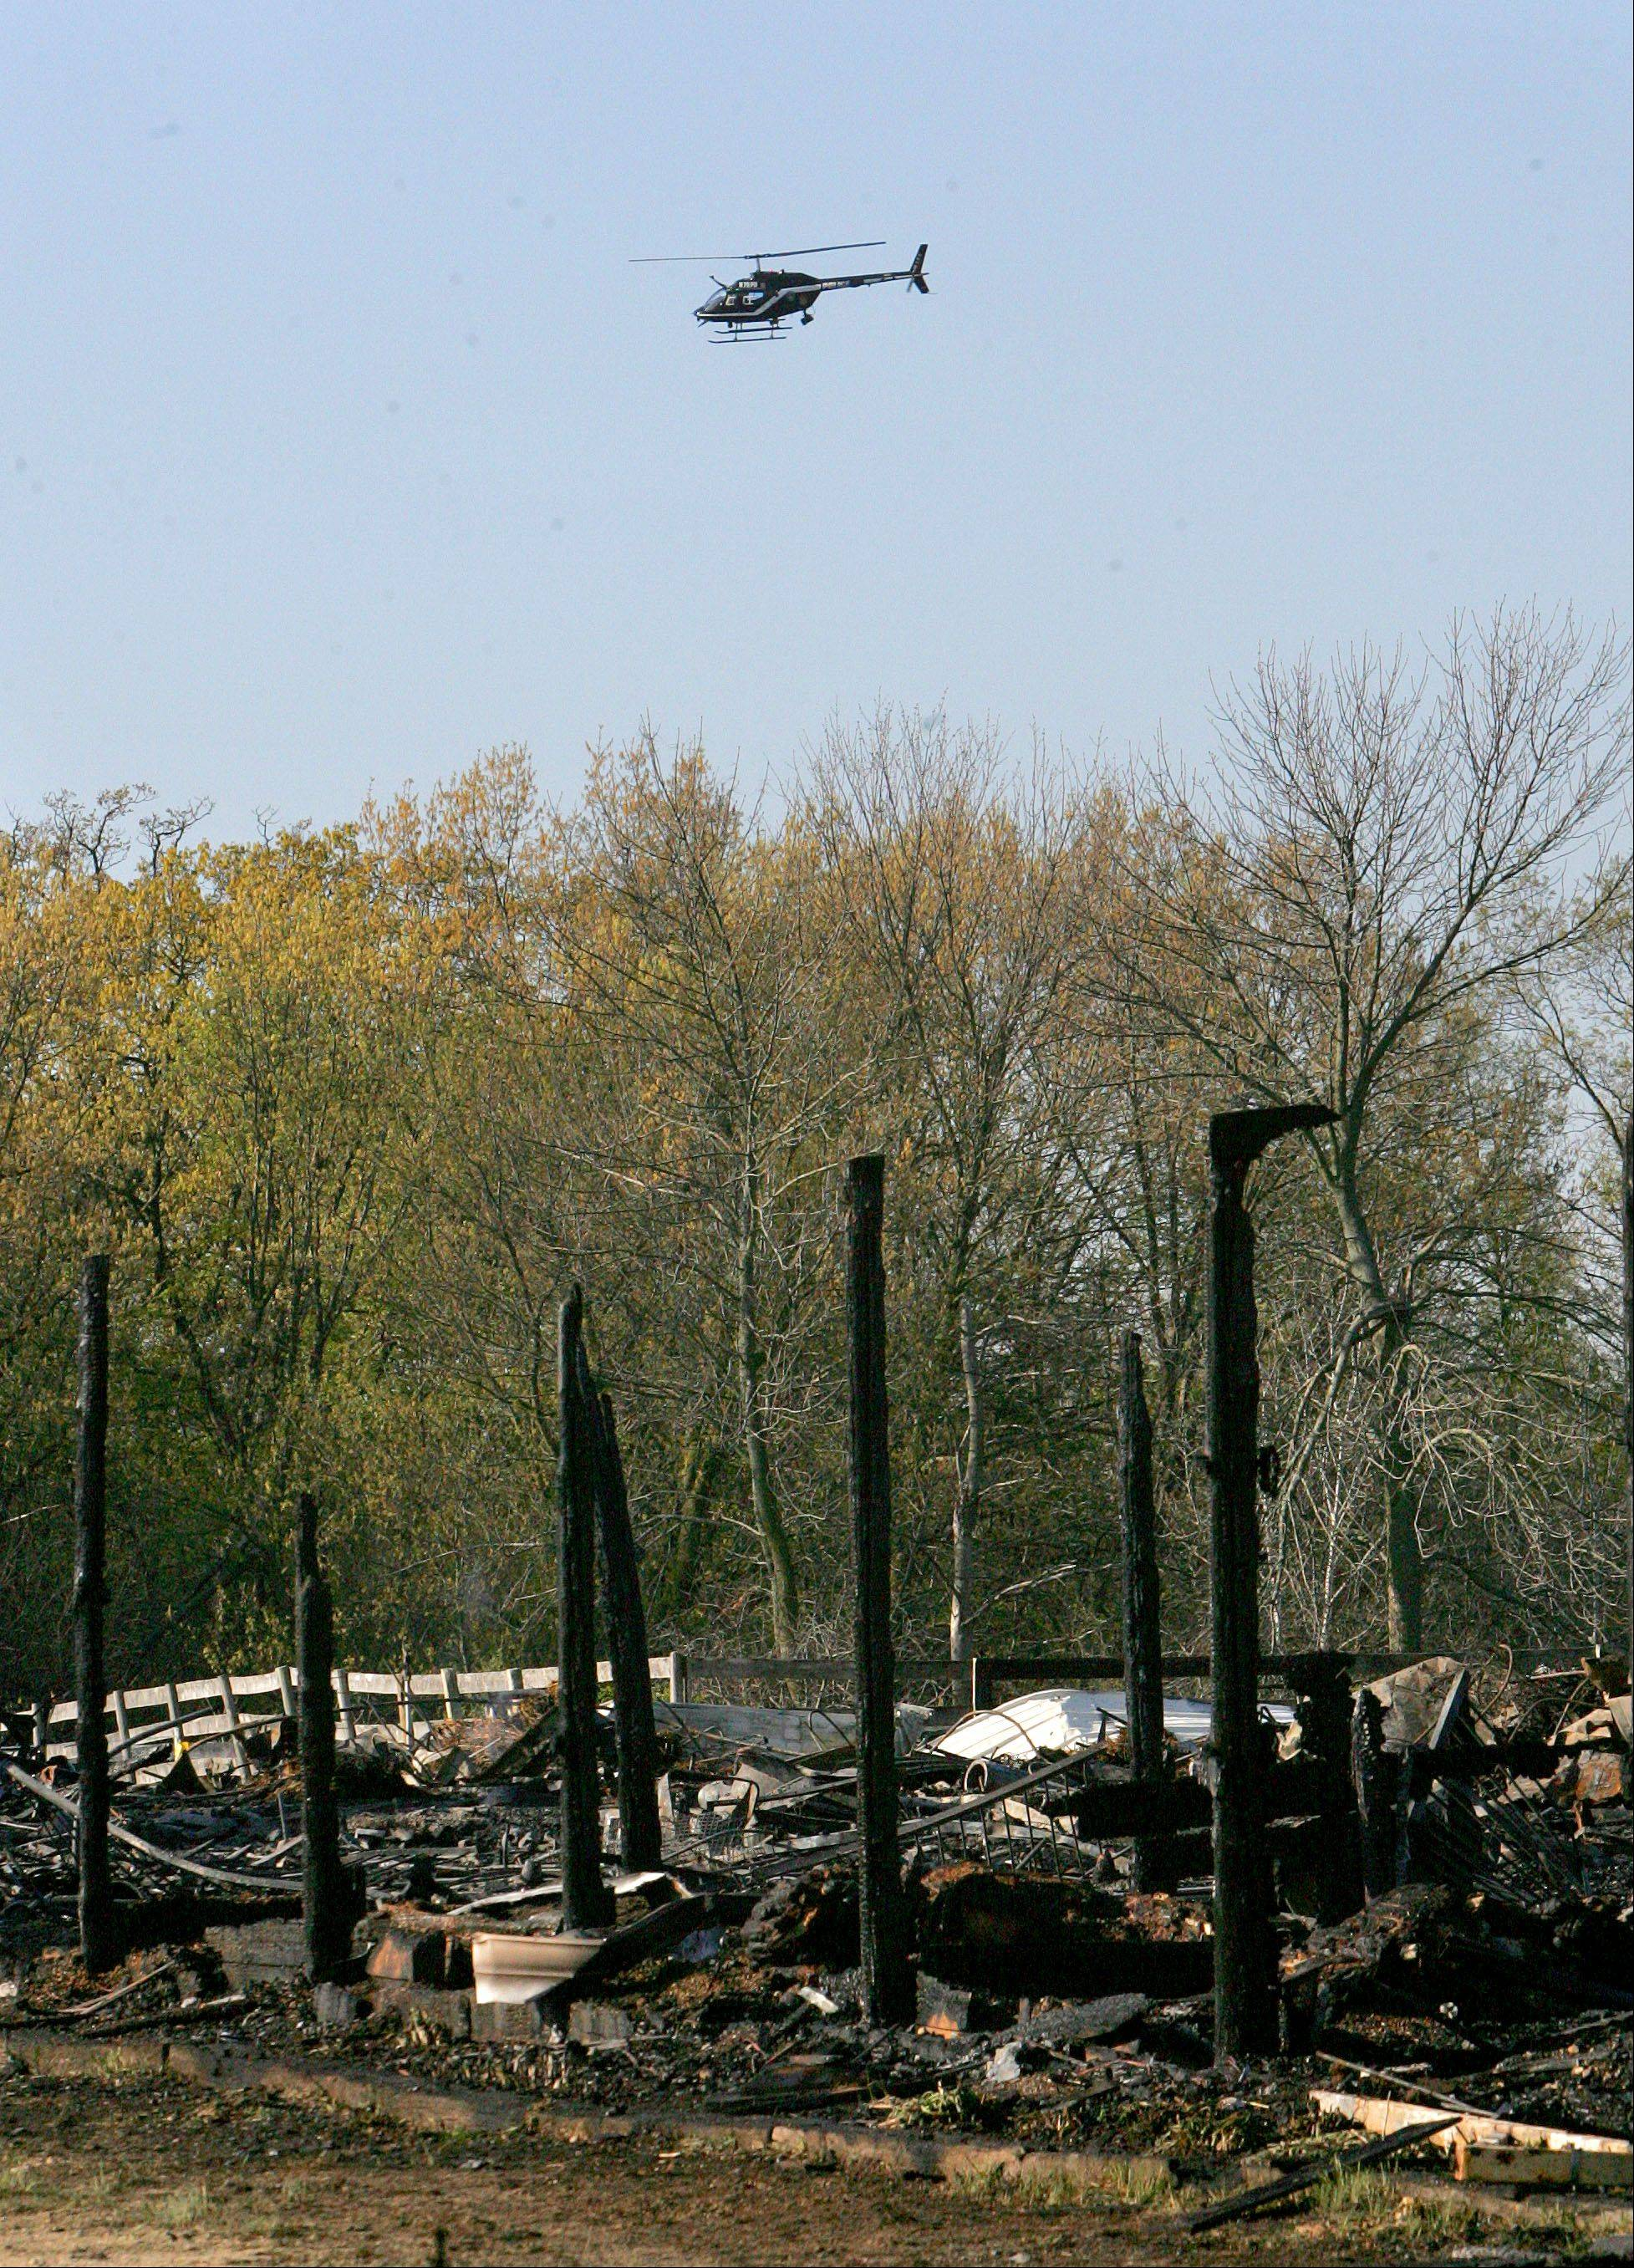 Police helicopters search the area around Black Tie Stable for missing horses Thursday morning, a day after a fire destroyed the facility and killed at least 18 horses in McHenry County.